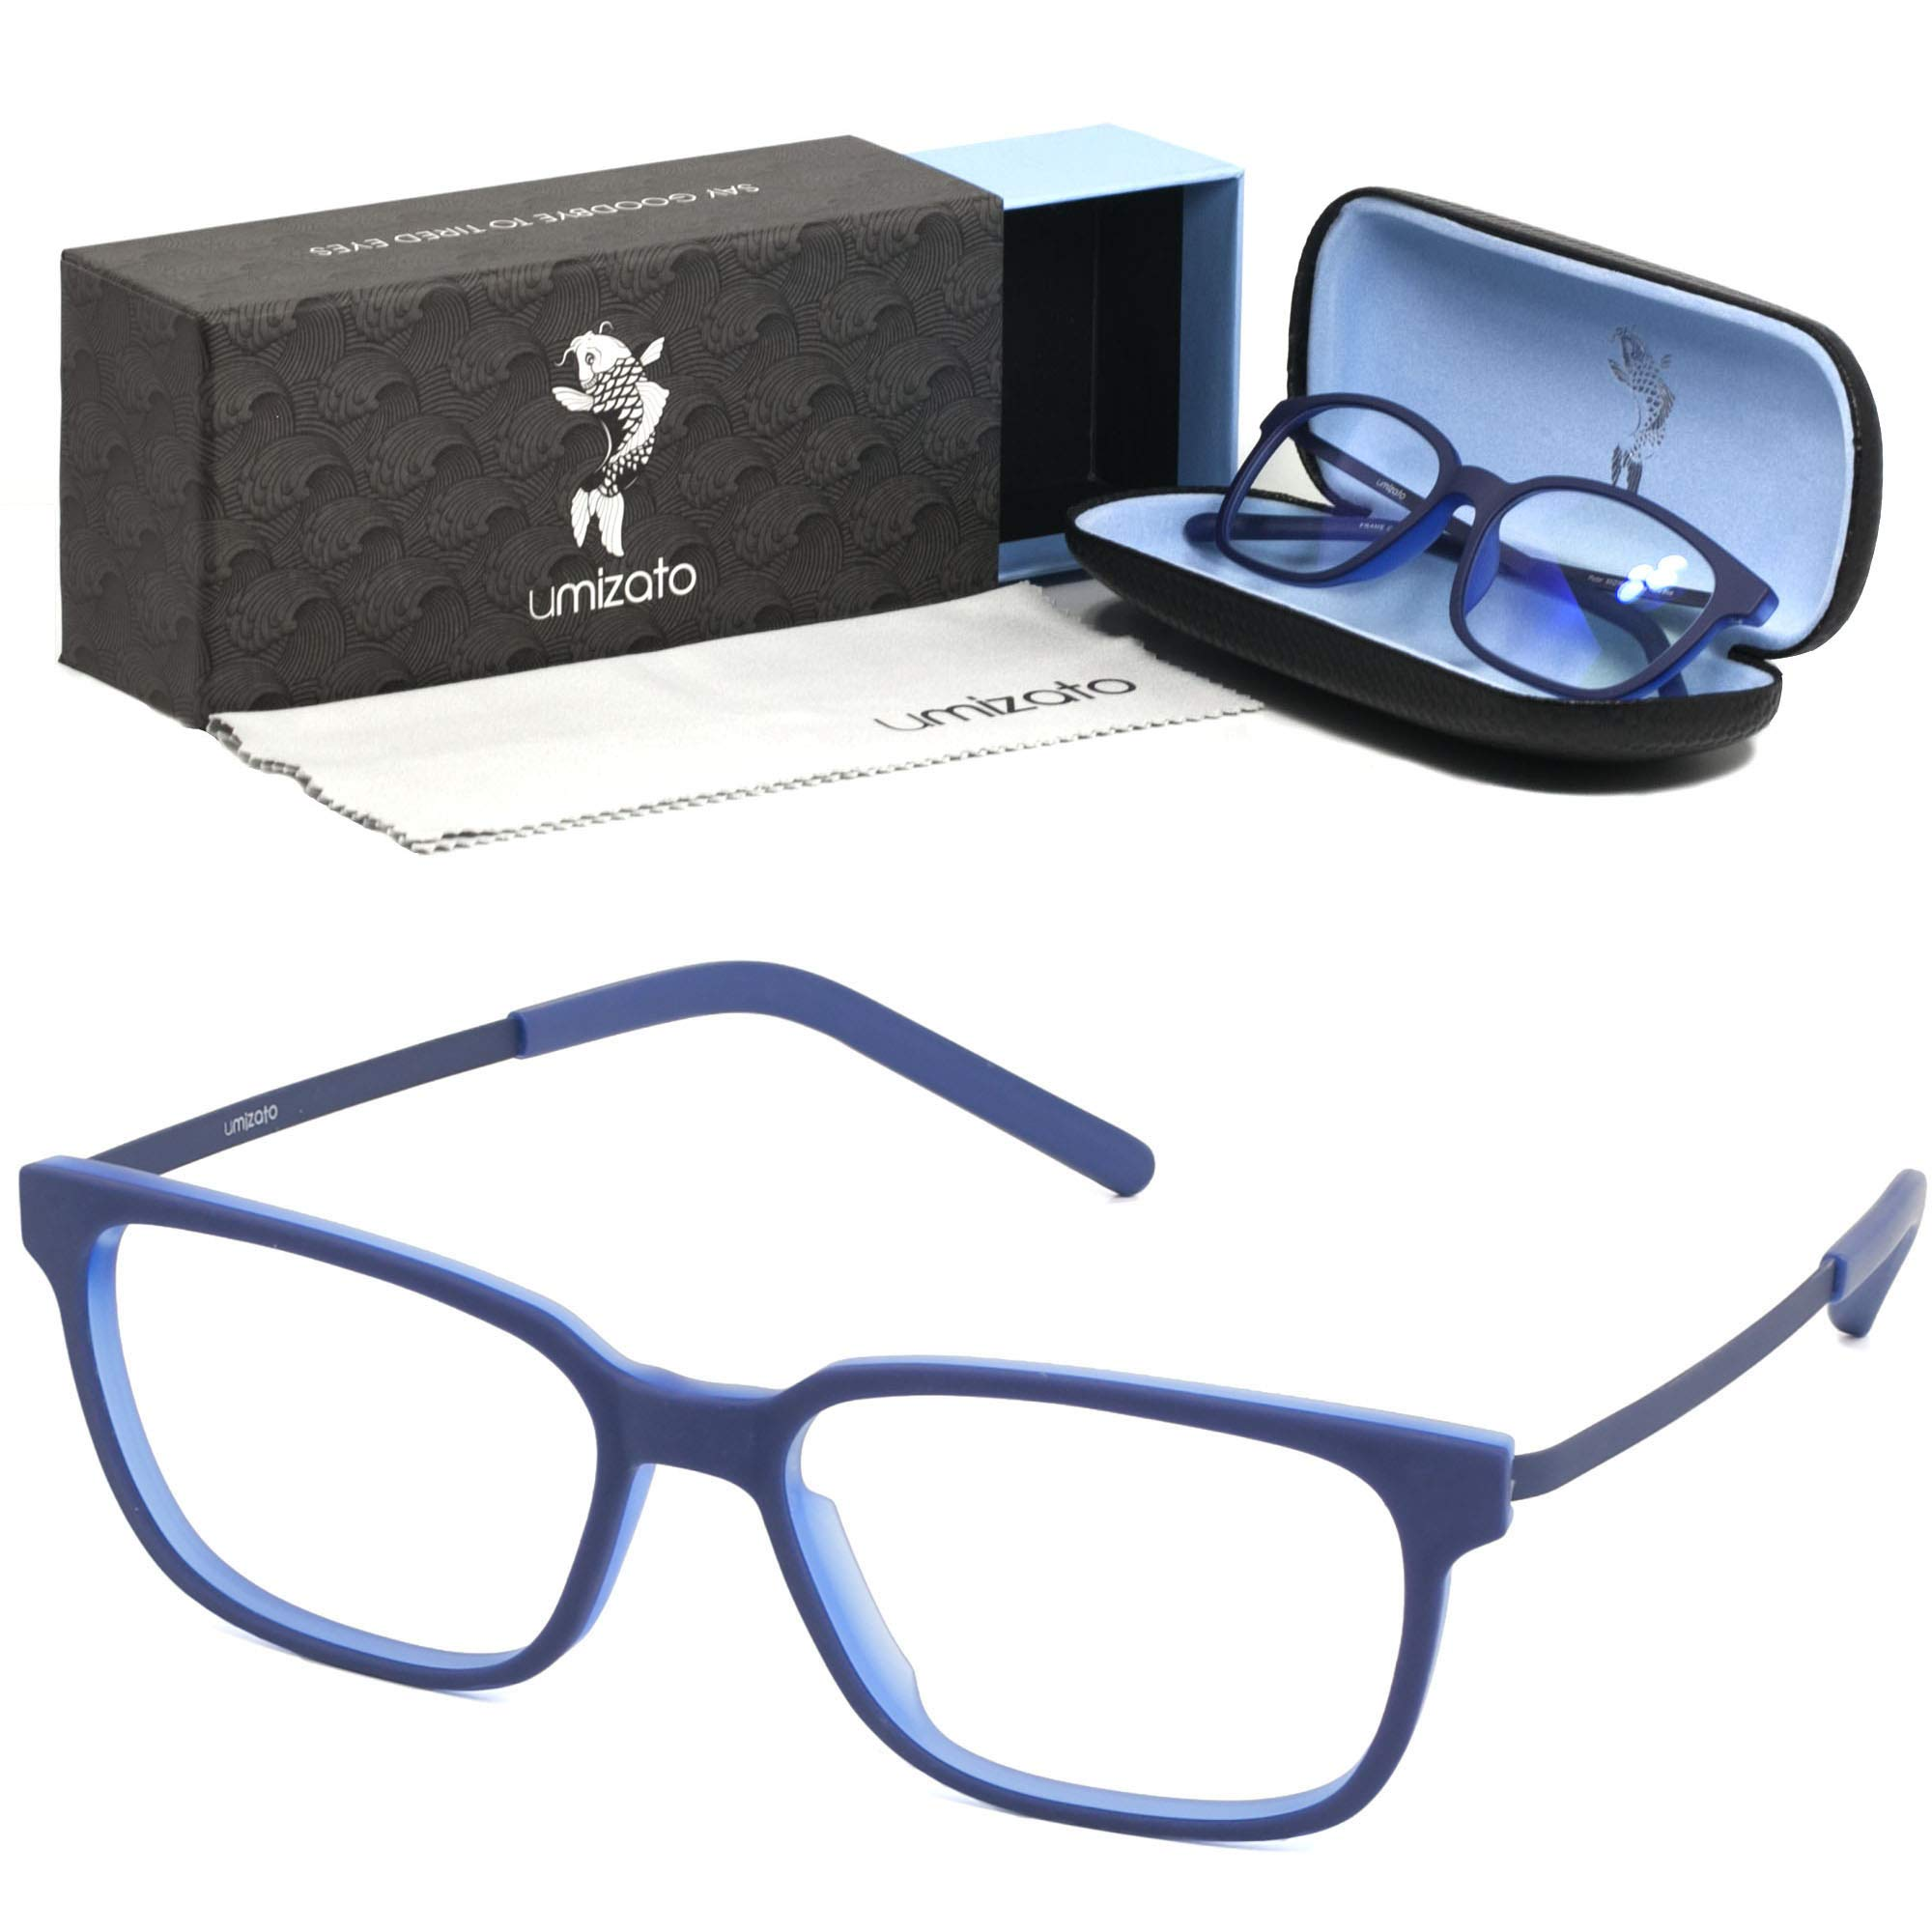 UMIZATO Computer Gaming Glasses Blue Light Blocking for Men Women Clear Lens, PC Accessories - FDA Approved - Relieves Digital Eye Strain, UV Blocker, Anti-Glare, Anti-Fatigue (PICTOR in Blue)